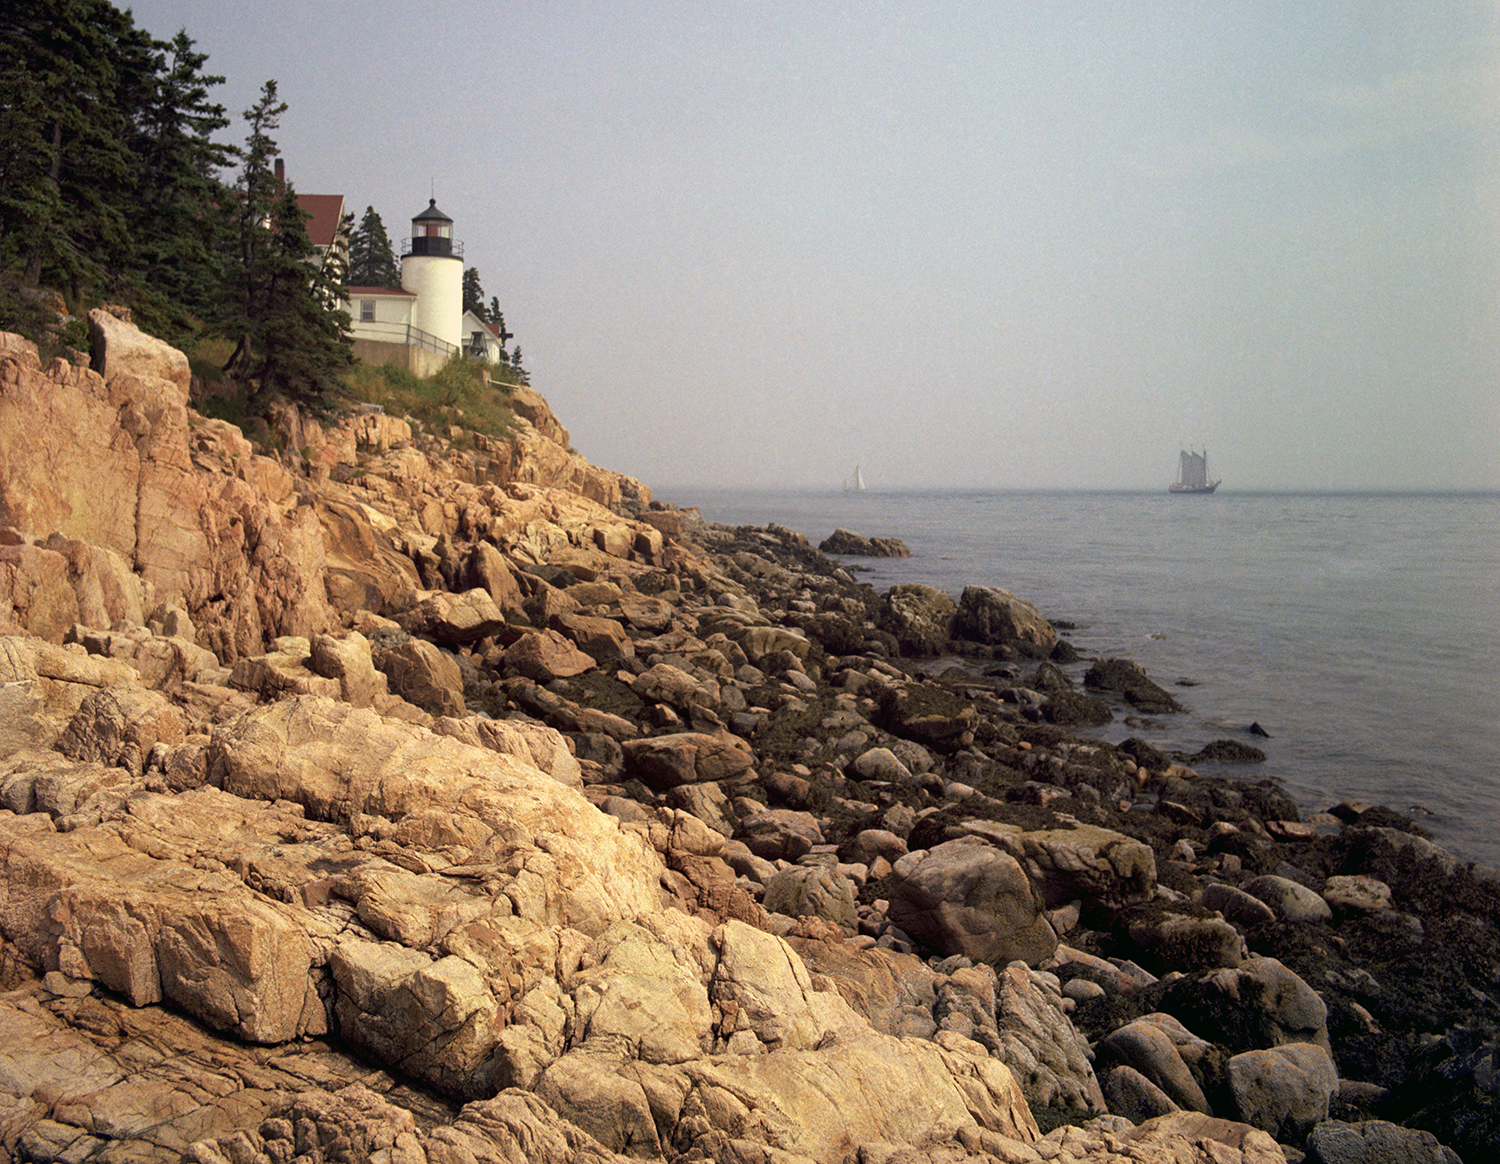 The Bass Harbor Light